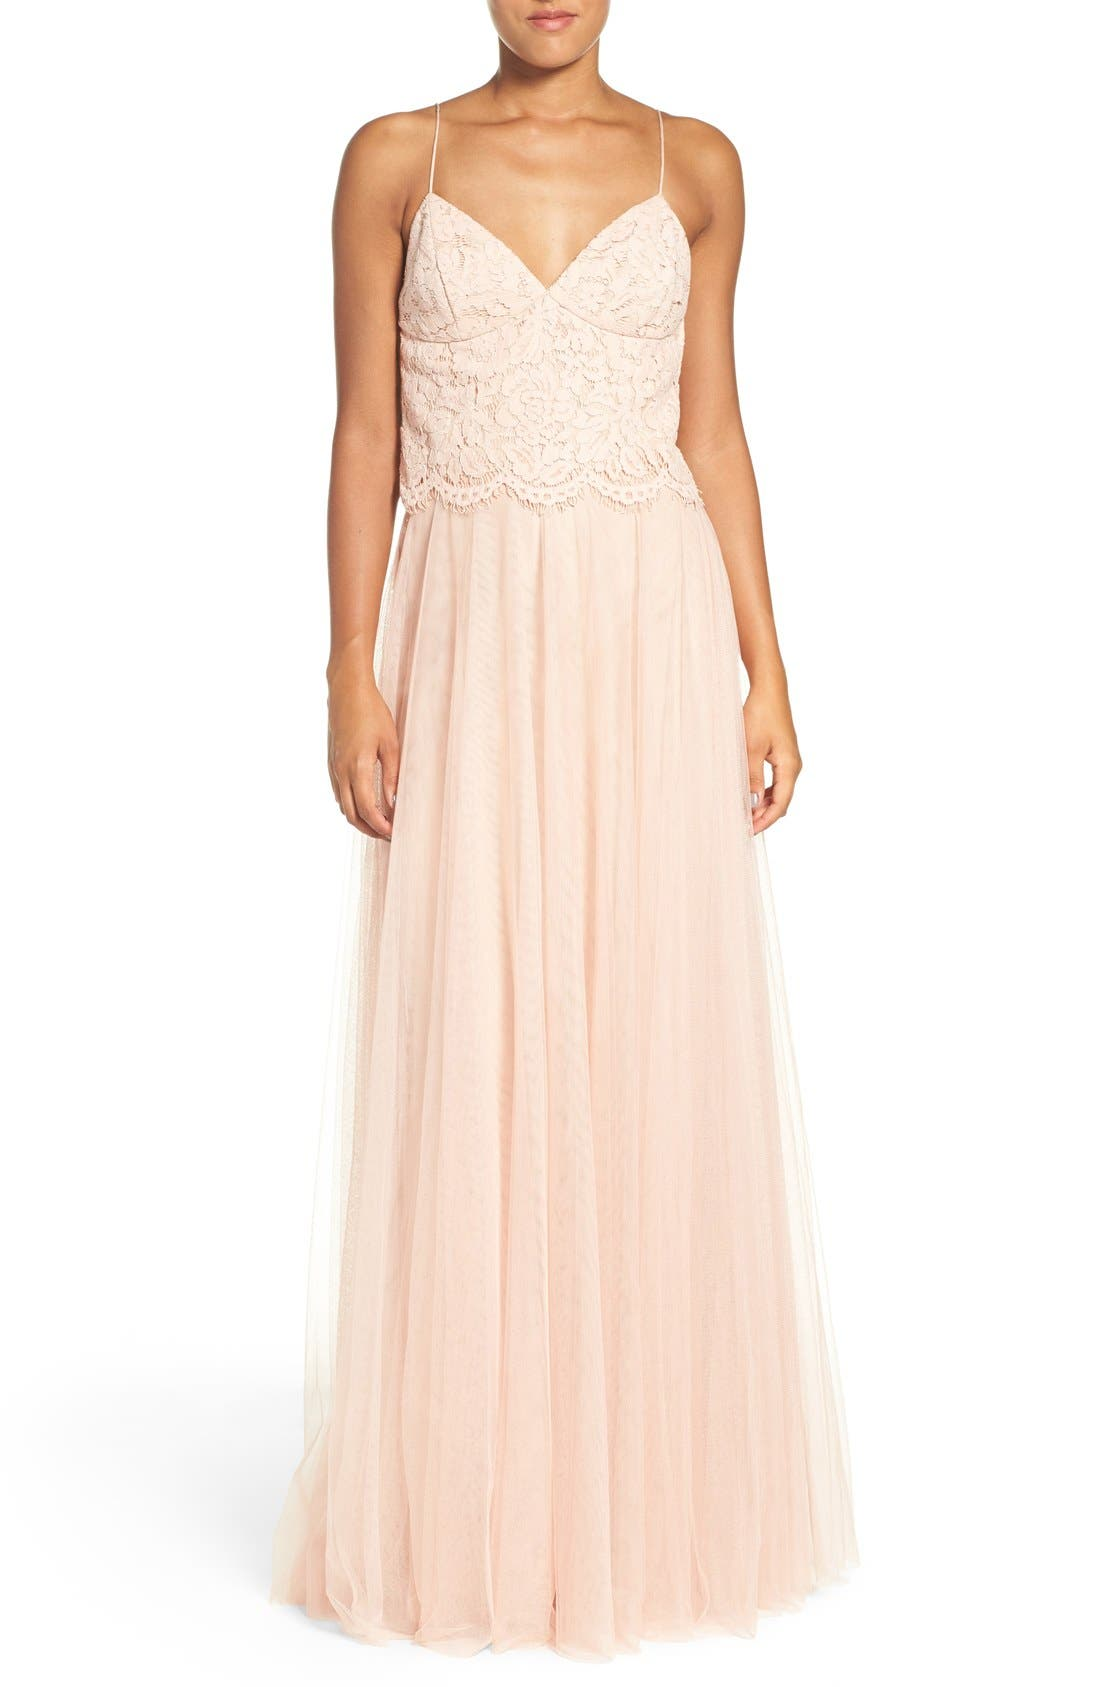 Winslow Long Tulle A-Line Skirt,                             Alternate thumbnail 12, color,                             CAMEO PINK